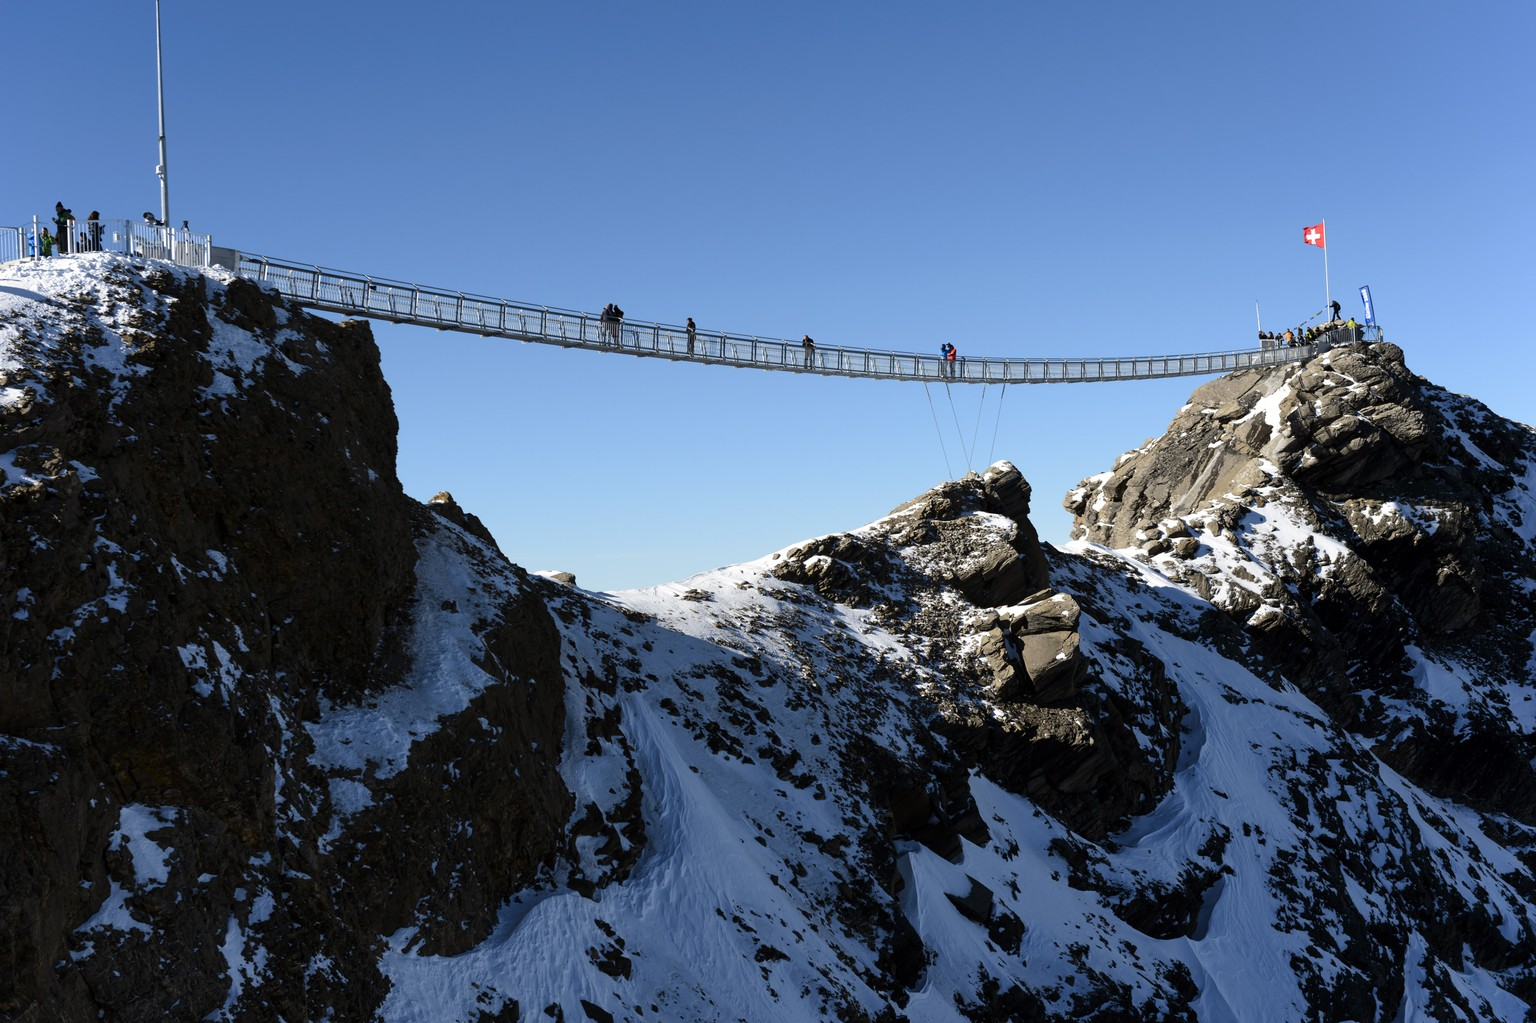 People walk on the bridge during the inauguration of the Peak Walk, the first and only suspension bridge to connect two mountain peaks, at the Glacier 3000 in Les Diablerets, Switzerland, Friday, 24 October, 2014. The Peak Walk connects the View Point peak with the main peak Scex Rouge (about 5 m higher). The 107 m long and 80 cm wide bridge offers a stunning view onto the Alps. (KEYSTONE/Laurent Gillieron)